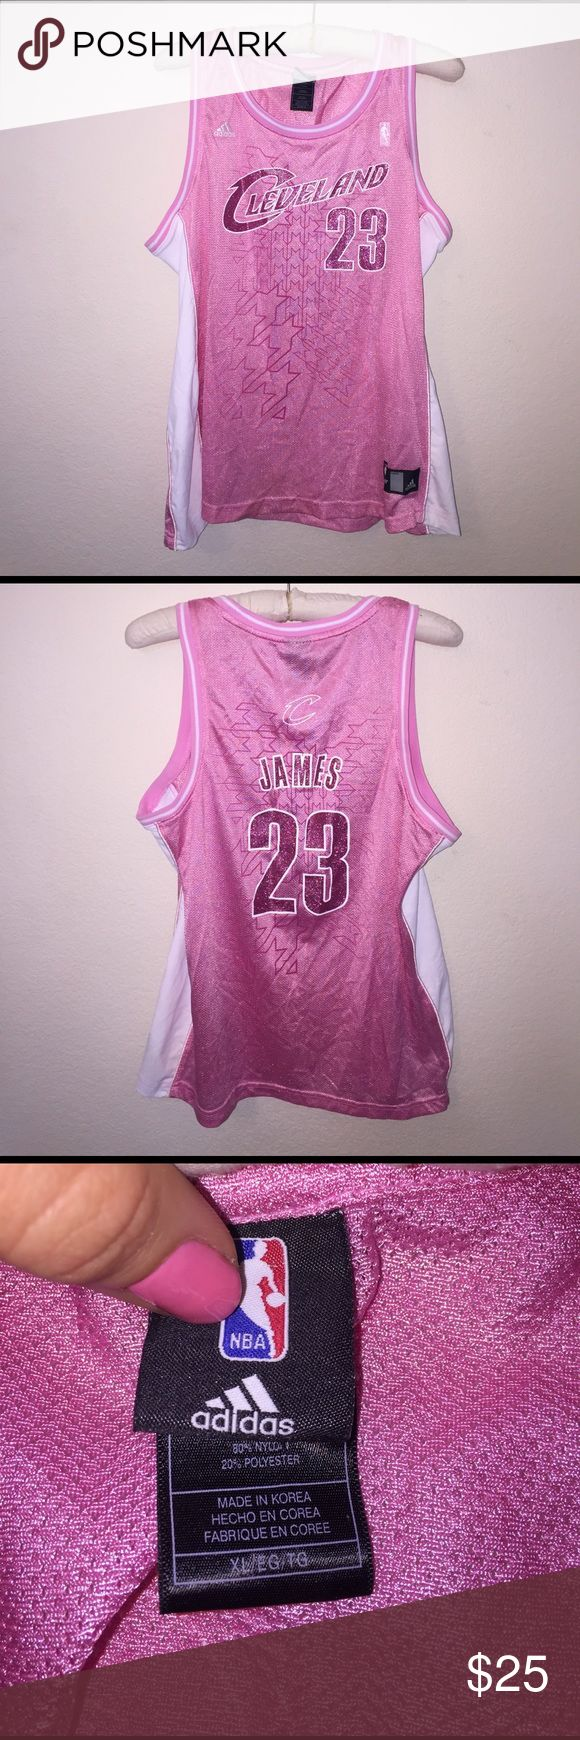 Lebron James Jersey Size XL, great condition! Perfect if your going to a game! Feel free to ask any questions! NBA Tops